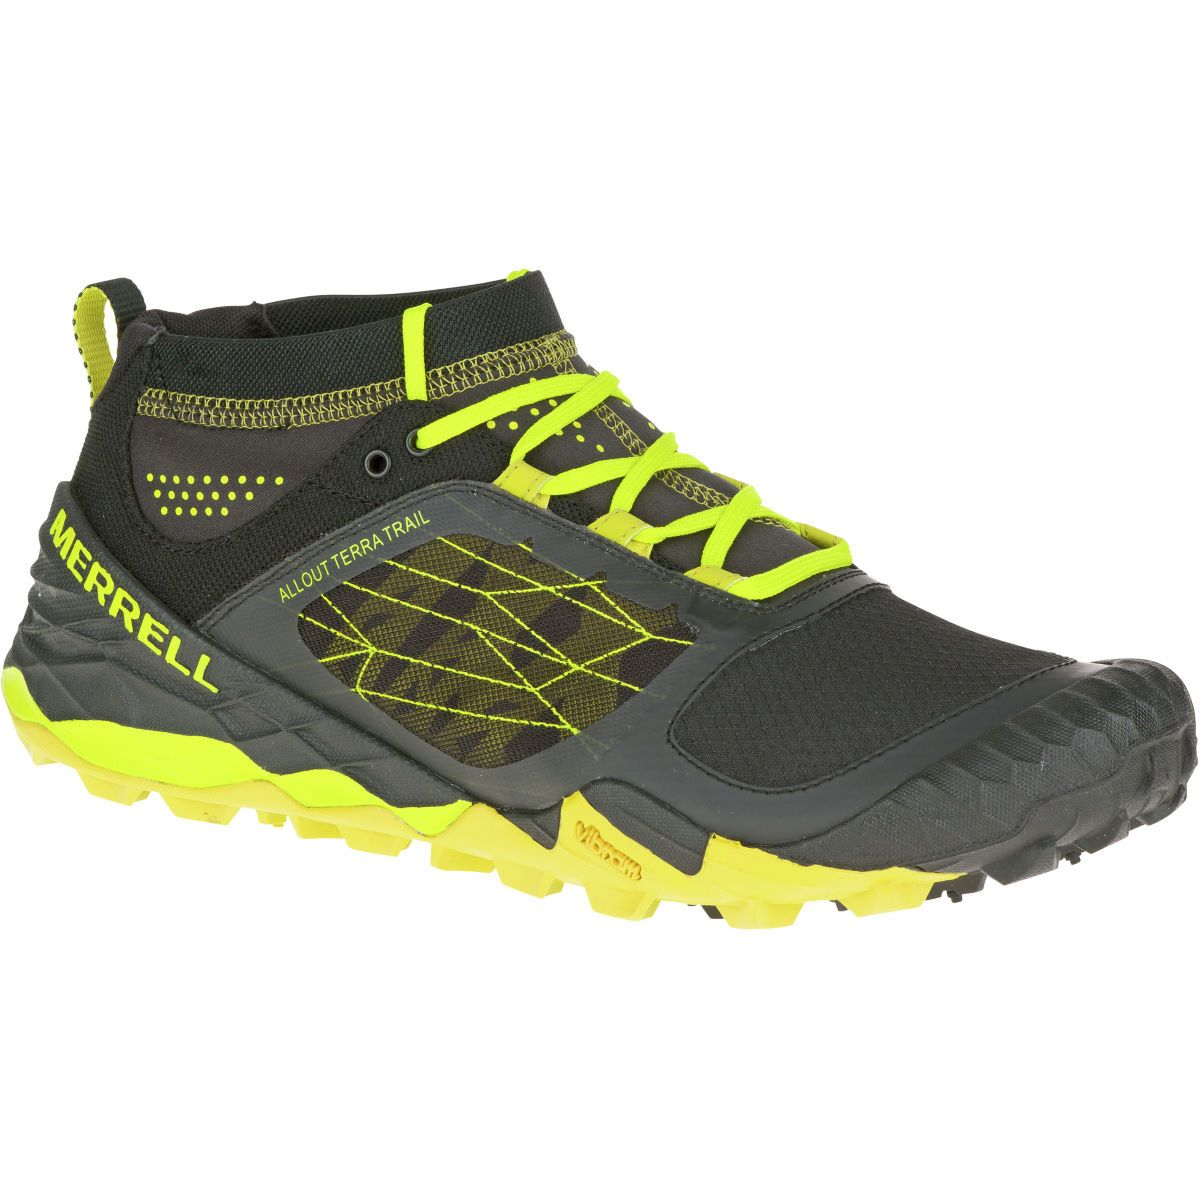 Merrell All Out Terra Trail Shoes (SS16) Offroad Running Shoes